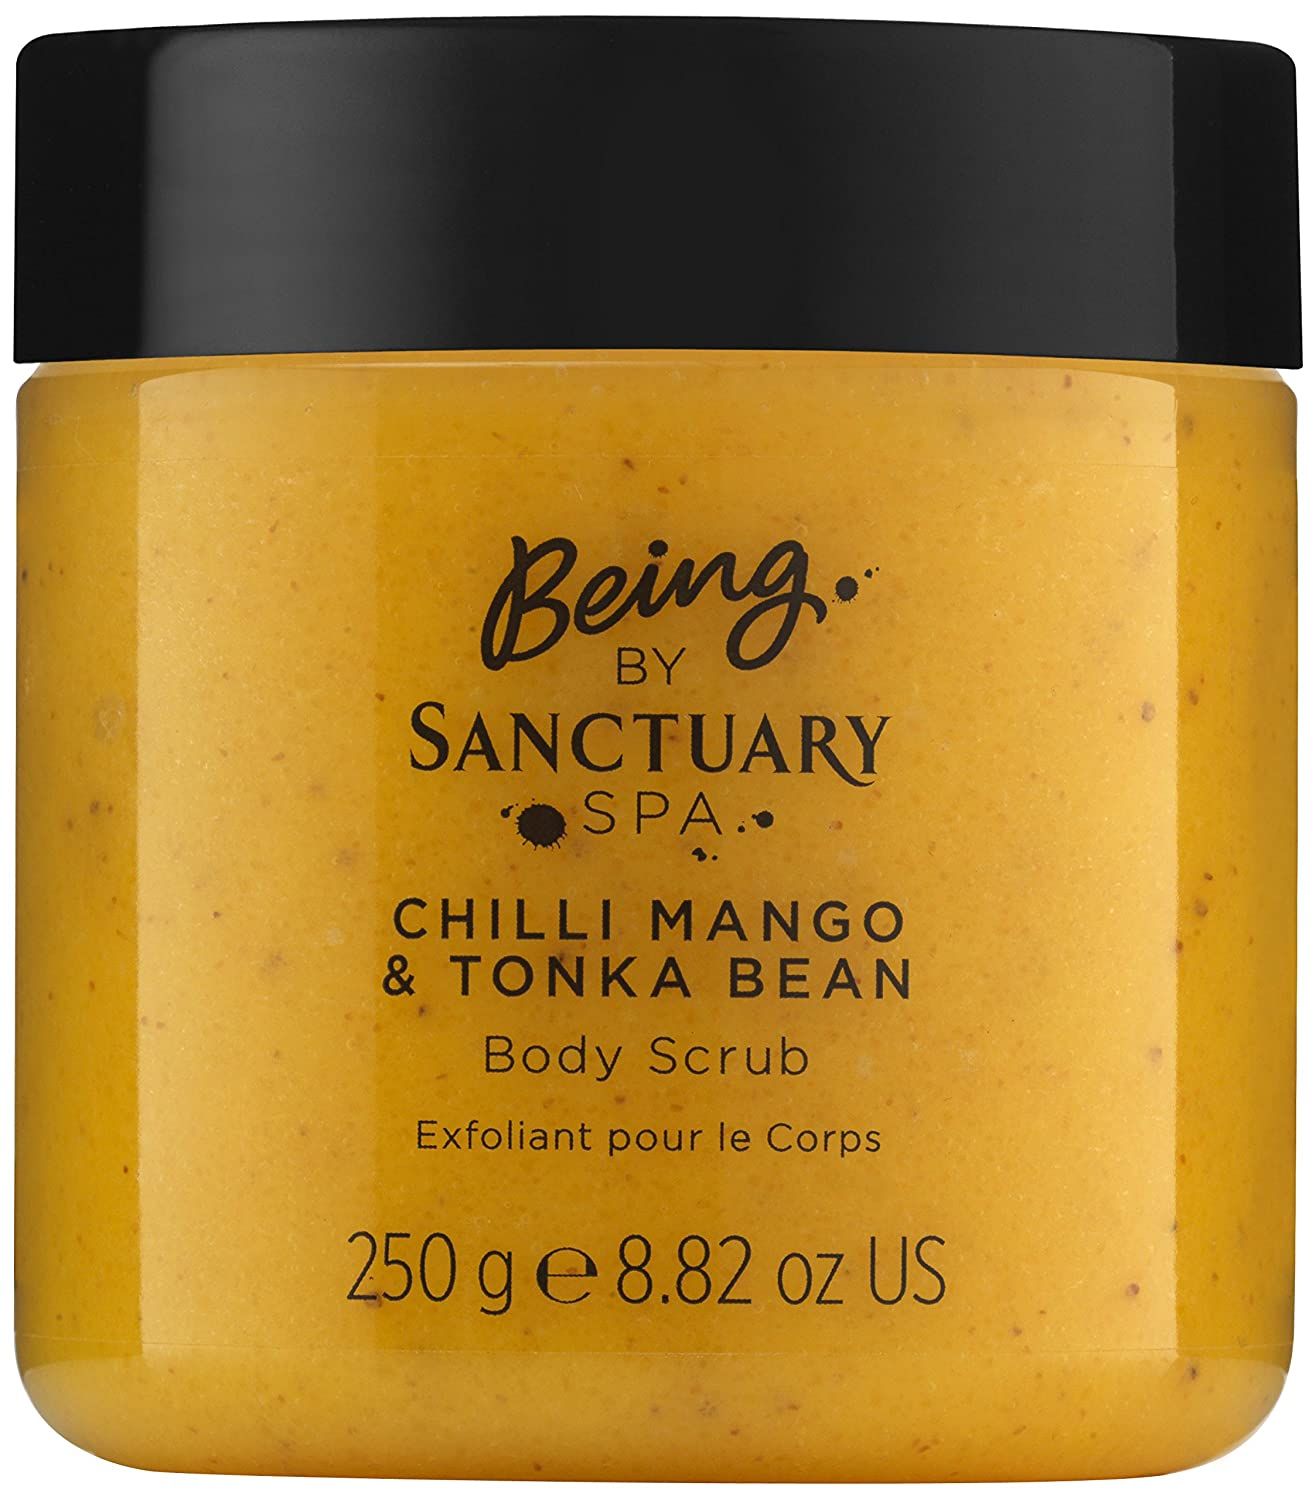 Being by Sanctuary Spa Salted Caramel and Macademia Body Scrub, 250 g PZ Cussons Beauty 100102135